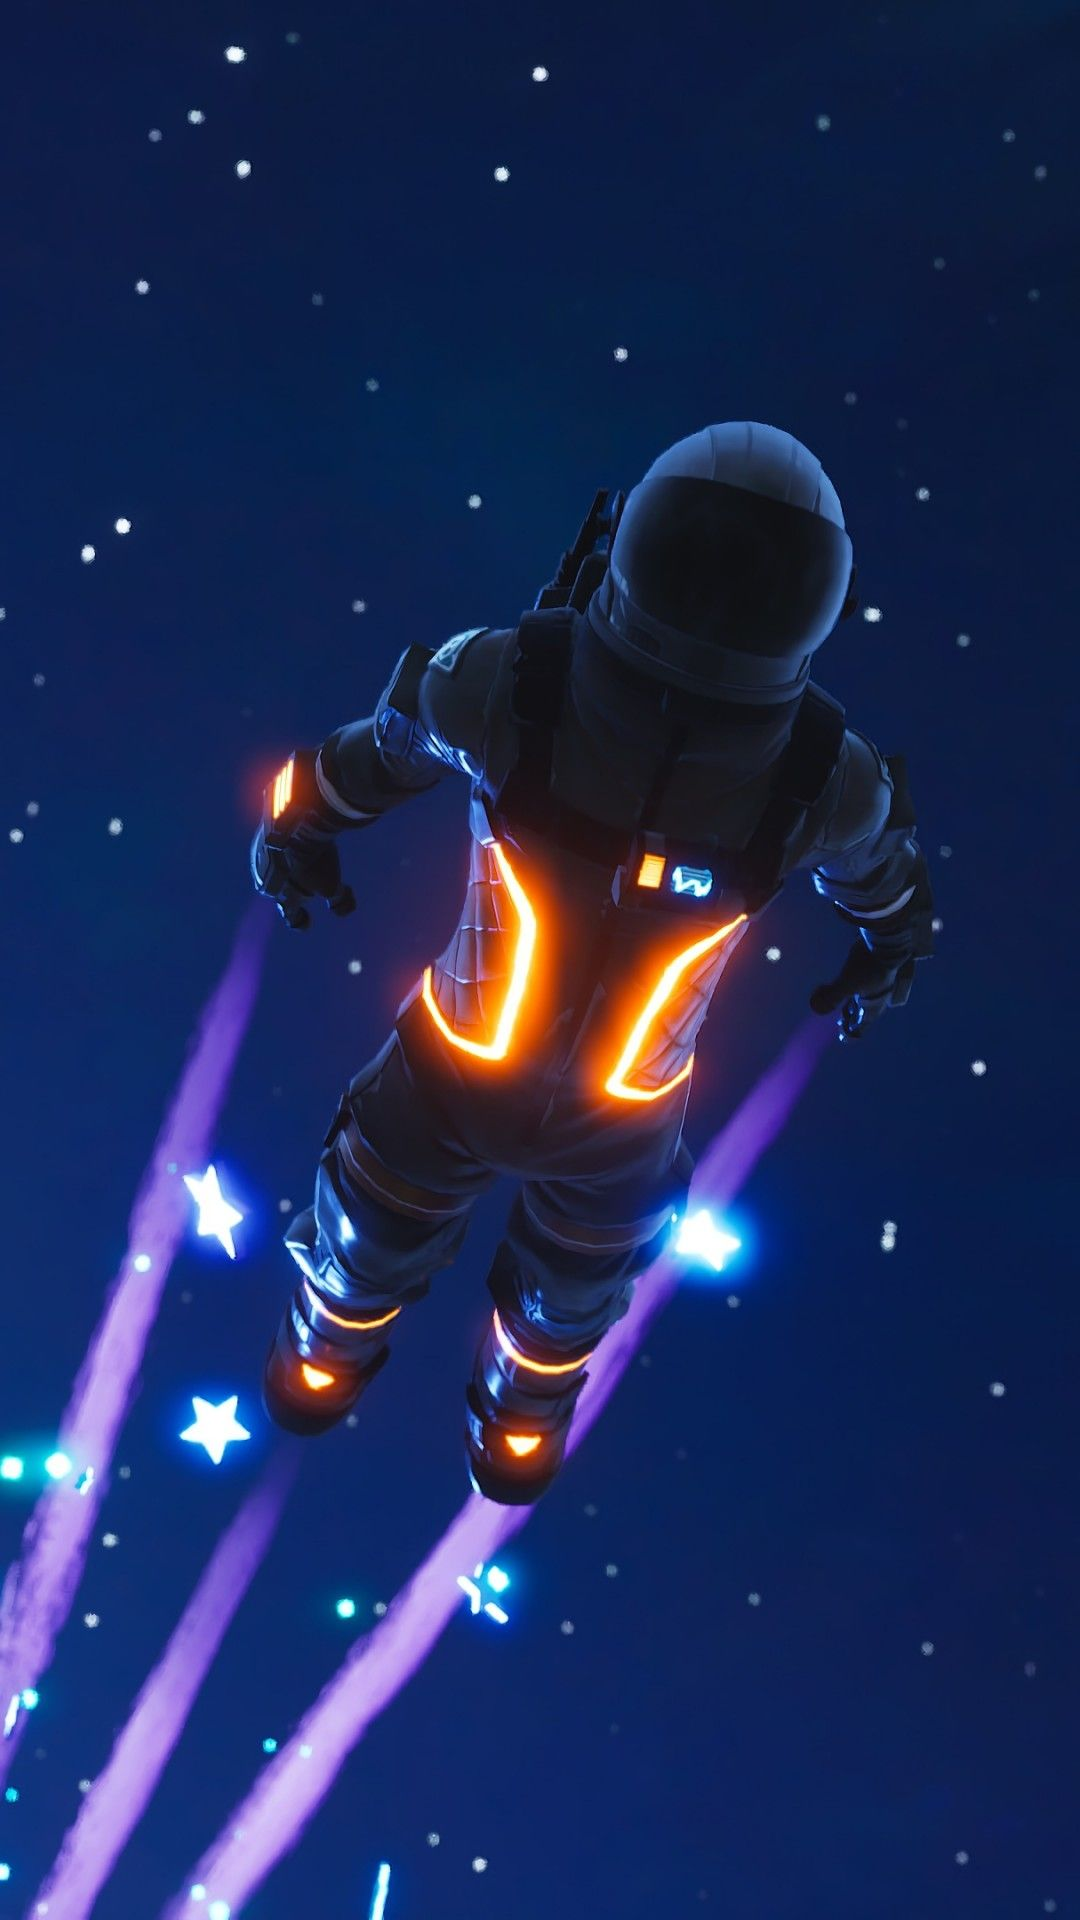 Fortnite Season 8 Hd Iphone Wallpaper Hupages Download Iphone Wallpapers Ultra Hd 4k Wallpaper Mobile Wallpaper Phone Wallpaper